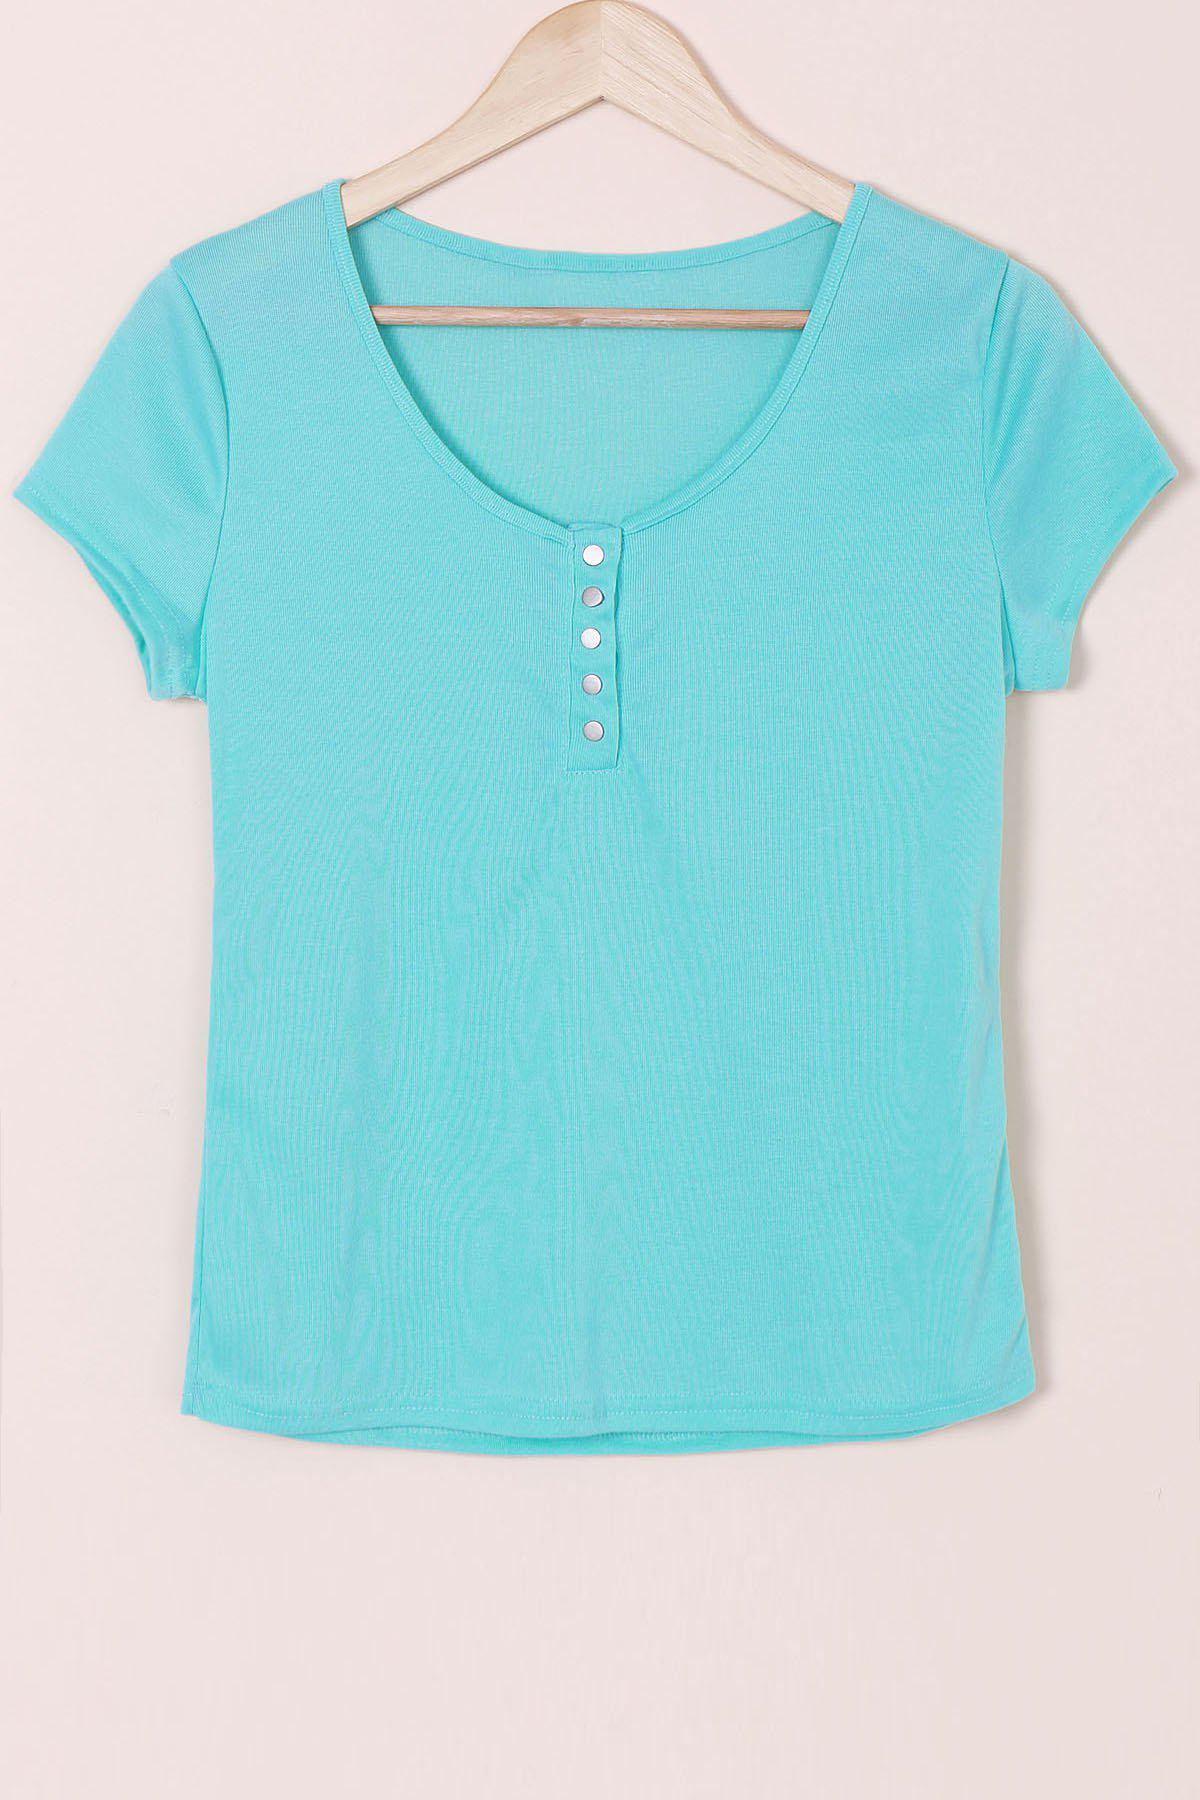 Sexy Scoop Neck Short Sleeve Solid Color Slimming Women's T-Shirt